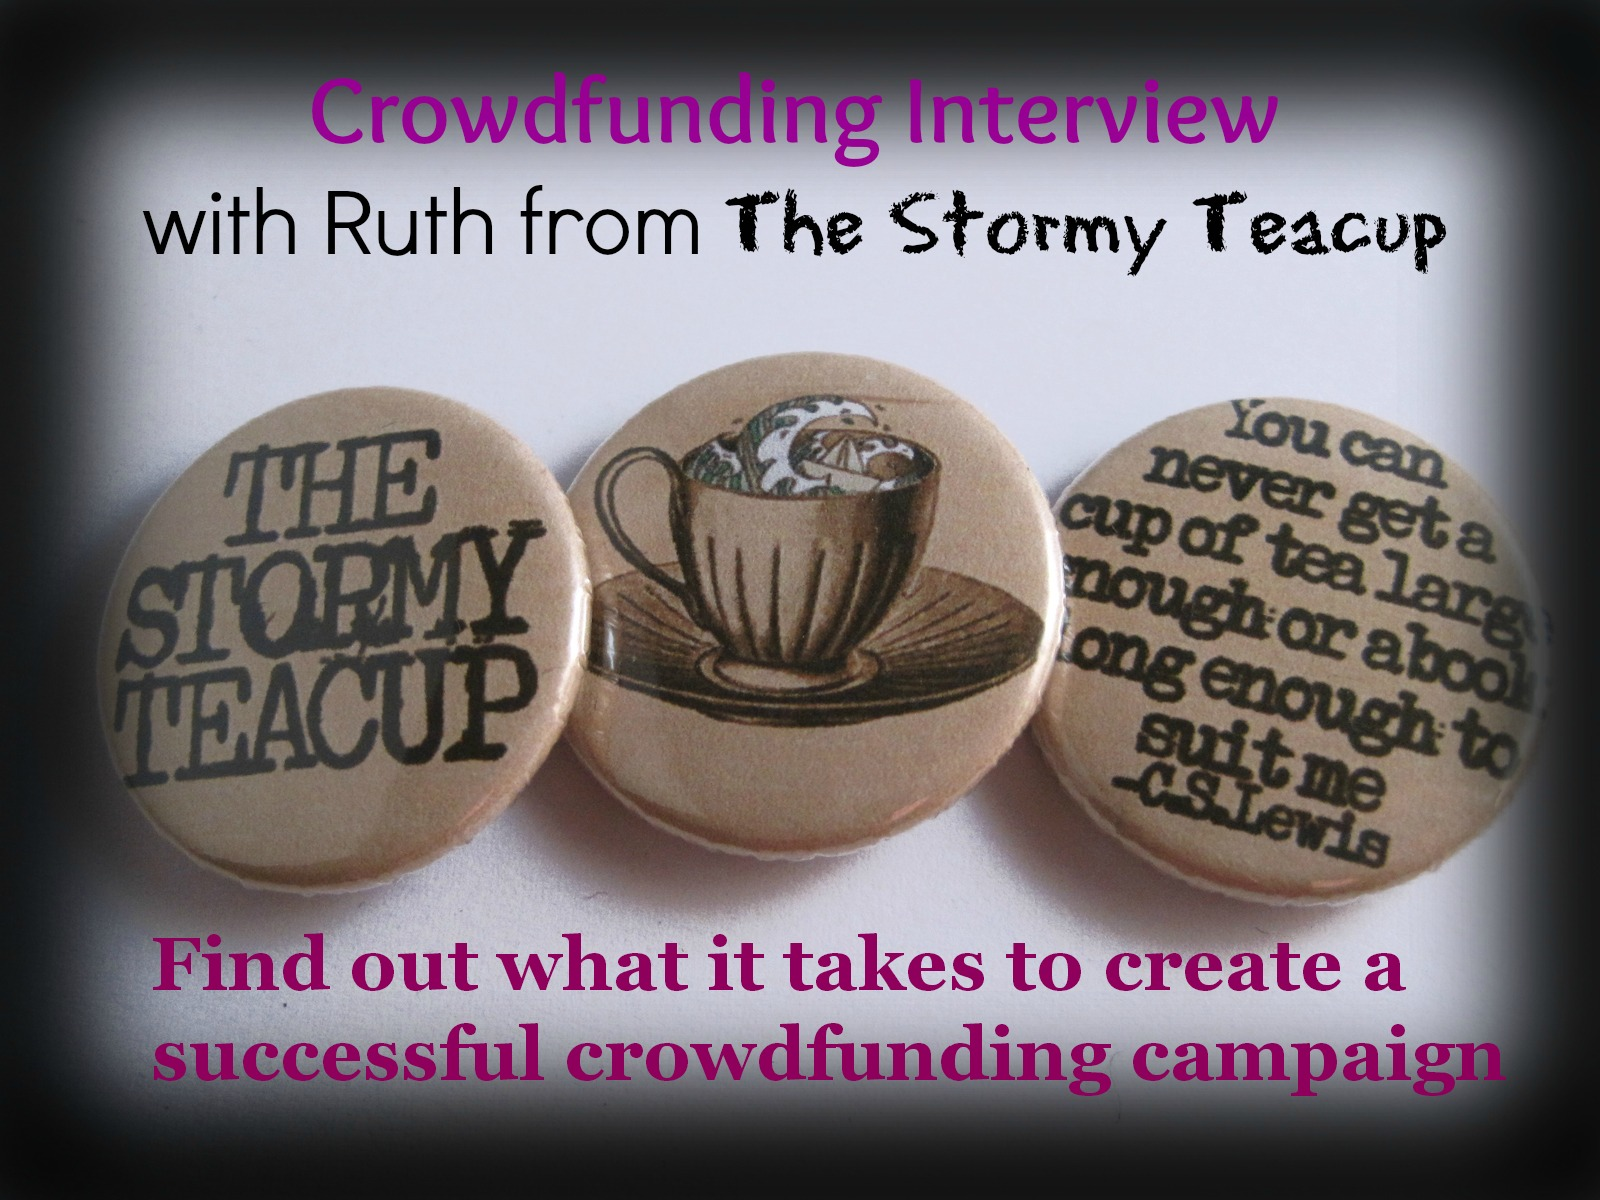 Crowdfunding Interview - find out what it takes to create a successful crowdfunding campaign